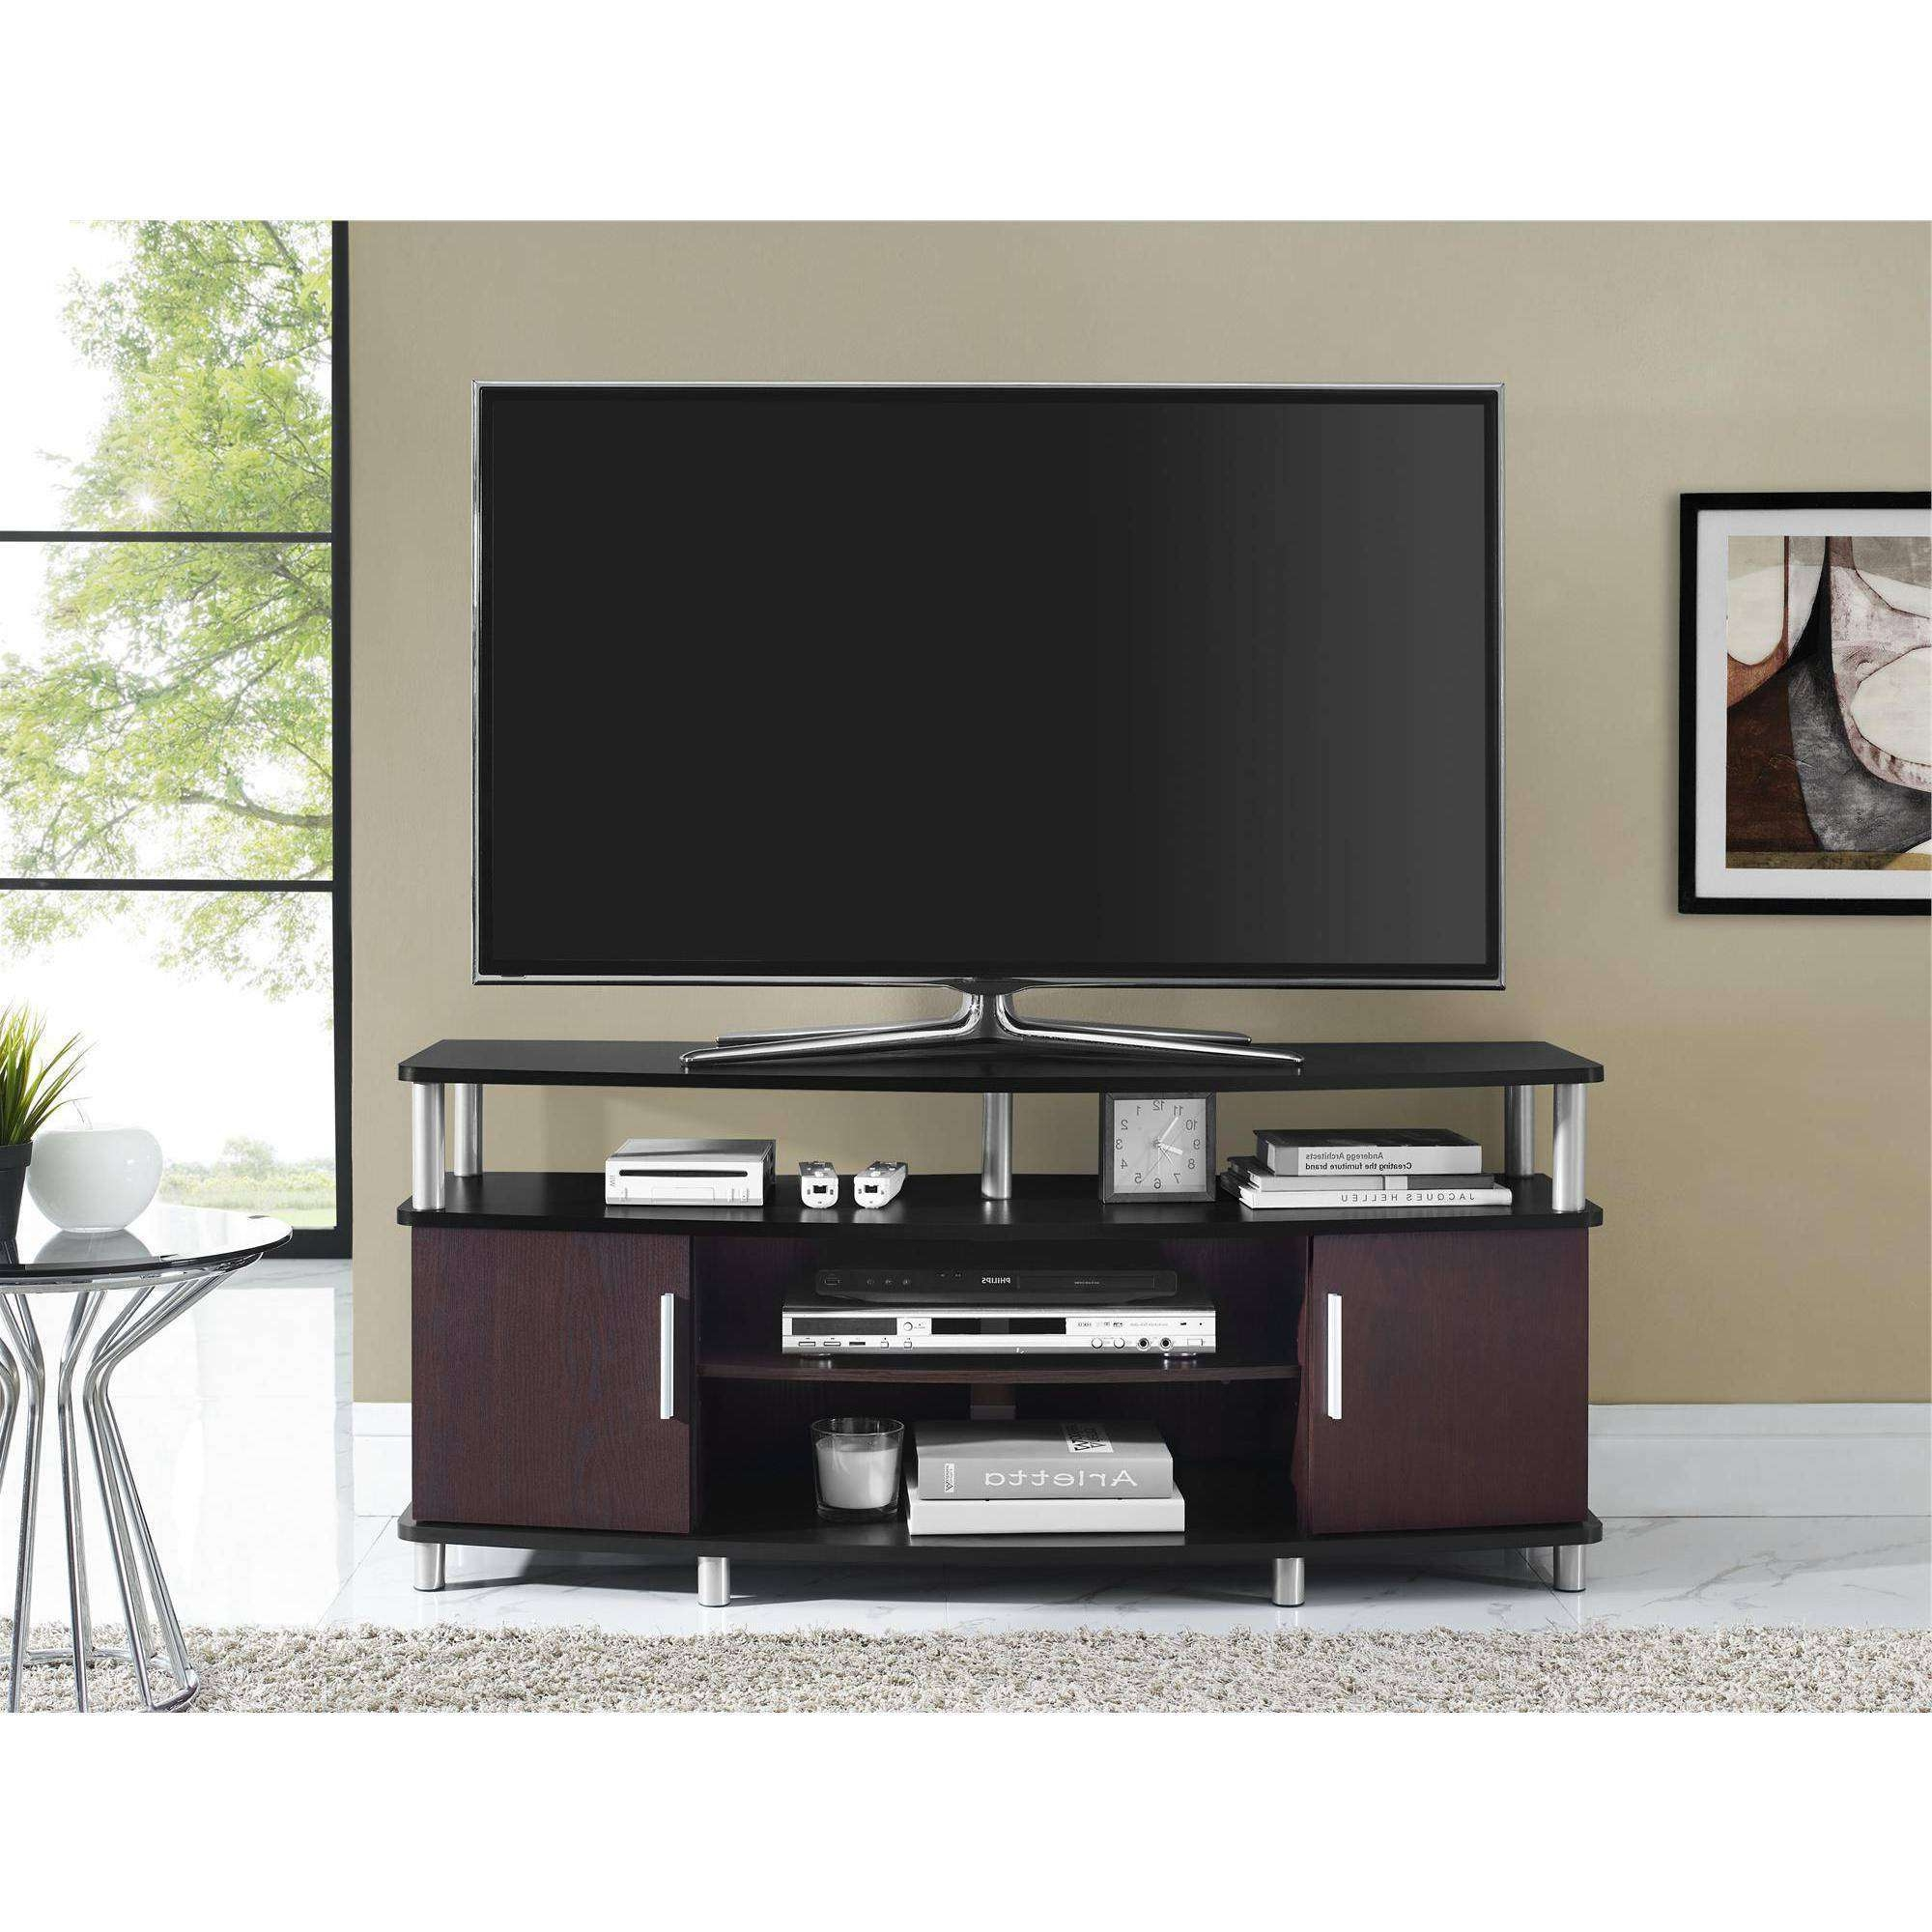 Flat Screen Tv Stands With Mount Furnitures Modern For Inch Intended For Modern Tv Stands With Mount (View 8 of 15)